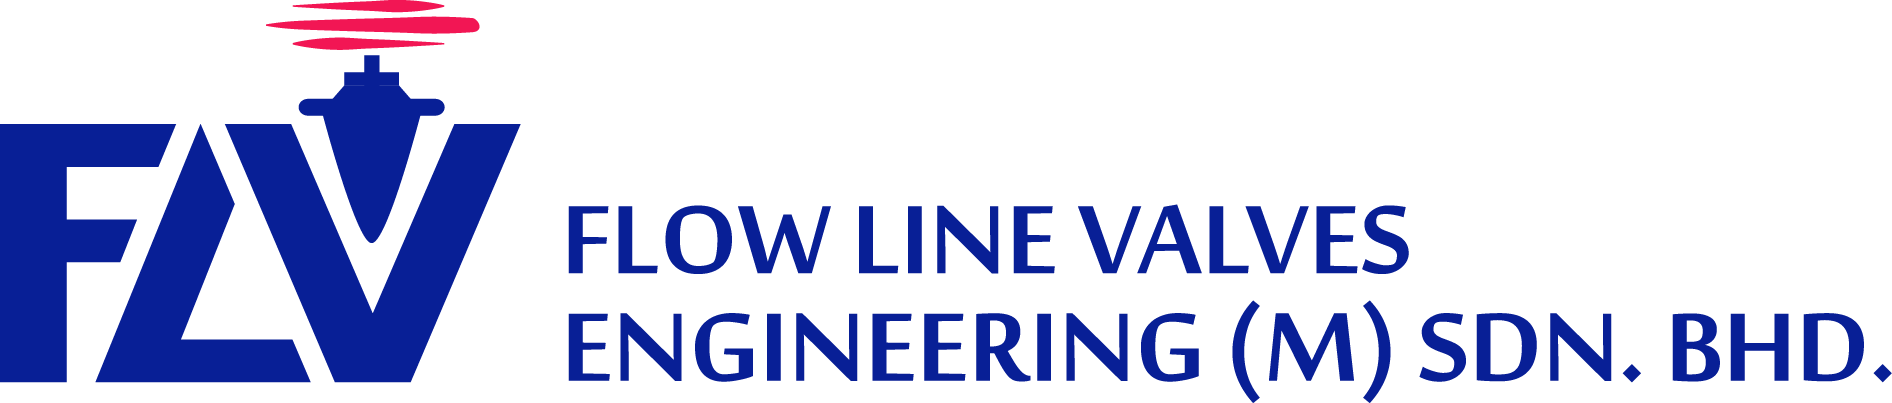 FLV Engineering